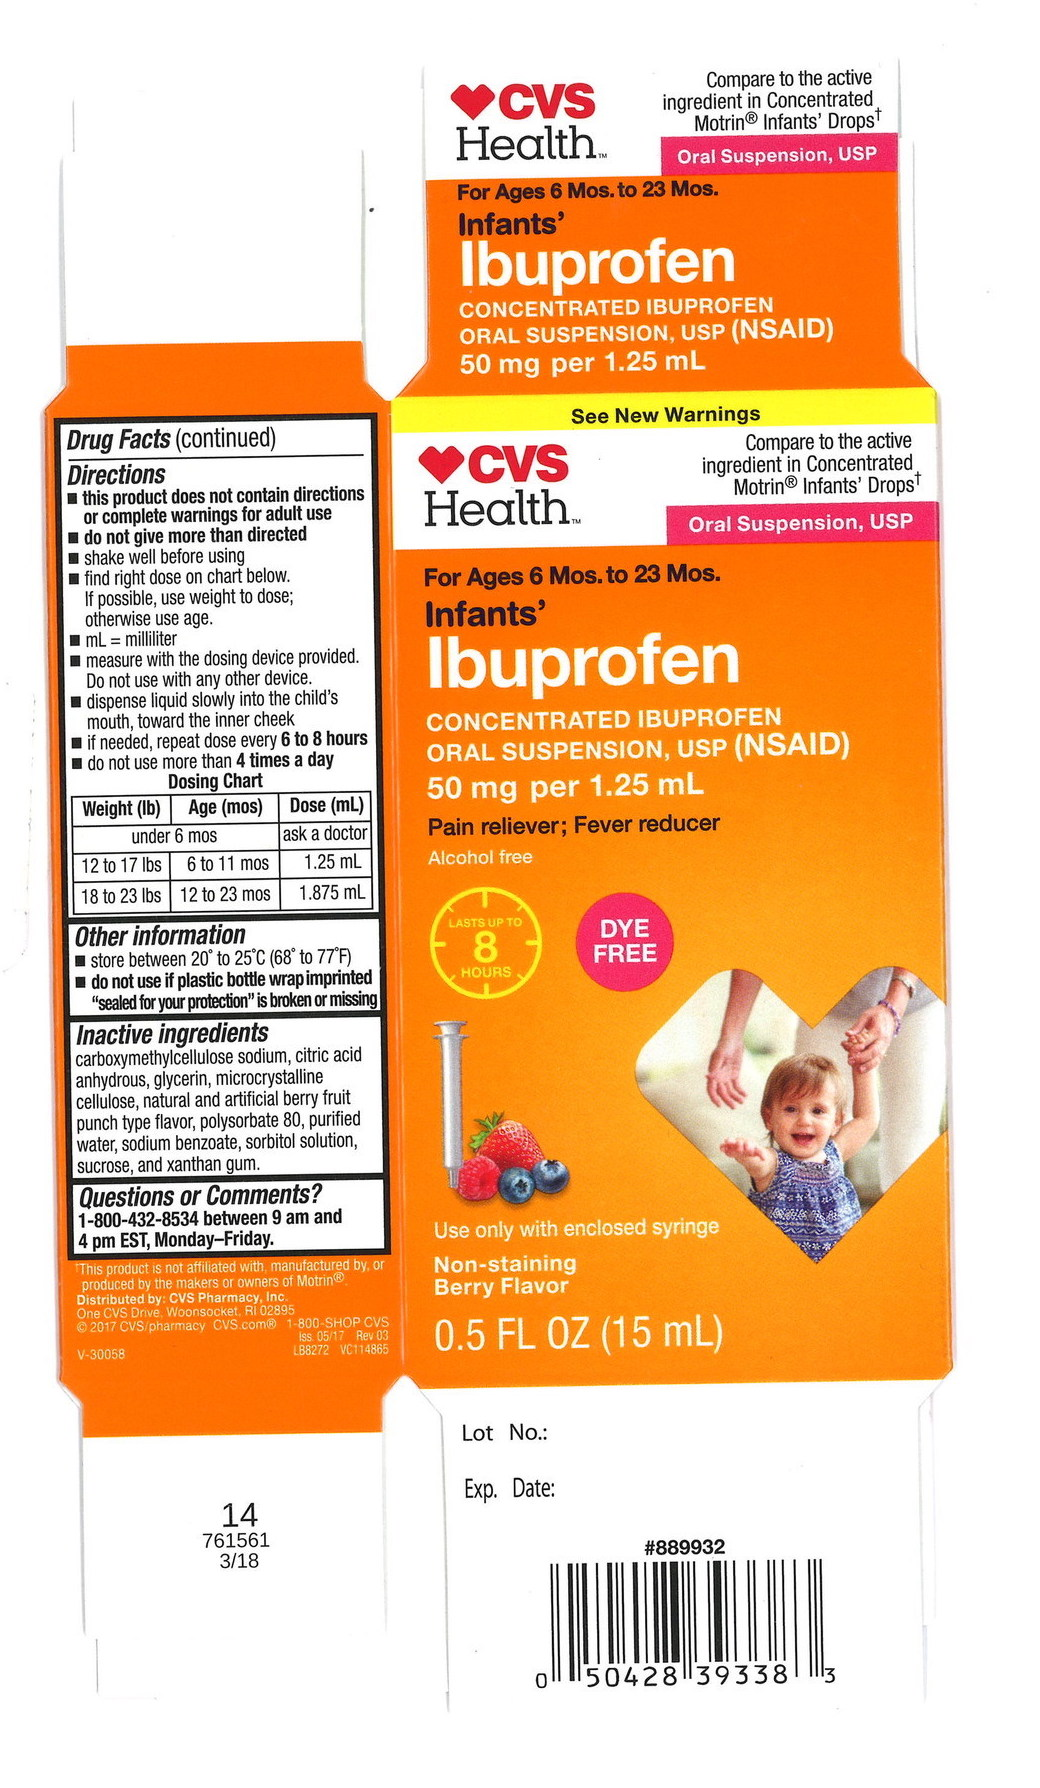 Three lots of  Infants' Ibuprofen Concentrated Oral Suspension that were made by Tris Pharma, Inc. and sold under the Equate, CVS Health, and Family Wellness brands and sold at Wal-Mart, CVS, and Family Dollar stores have been recalled.